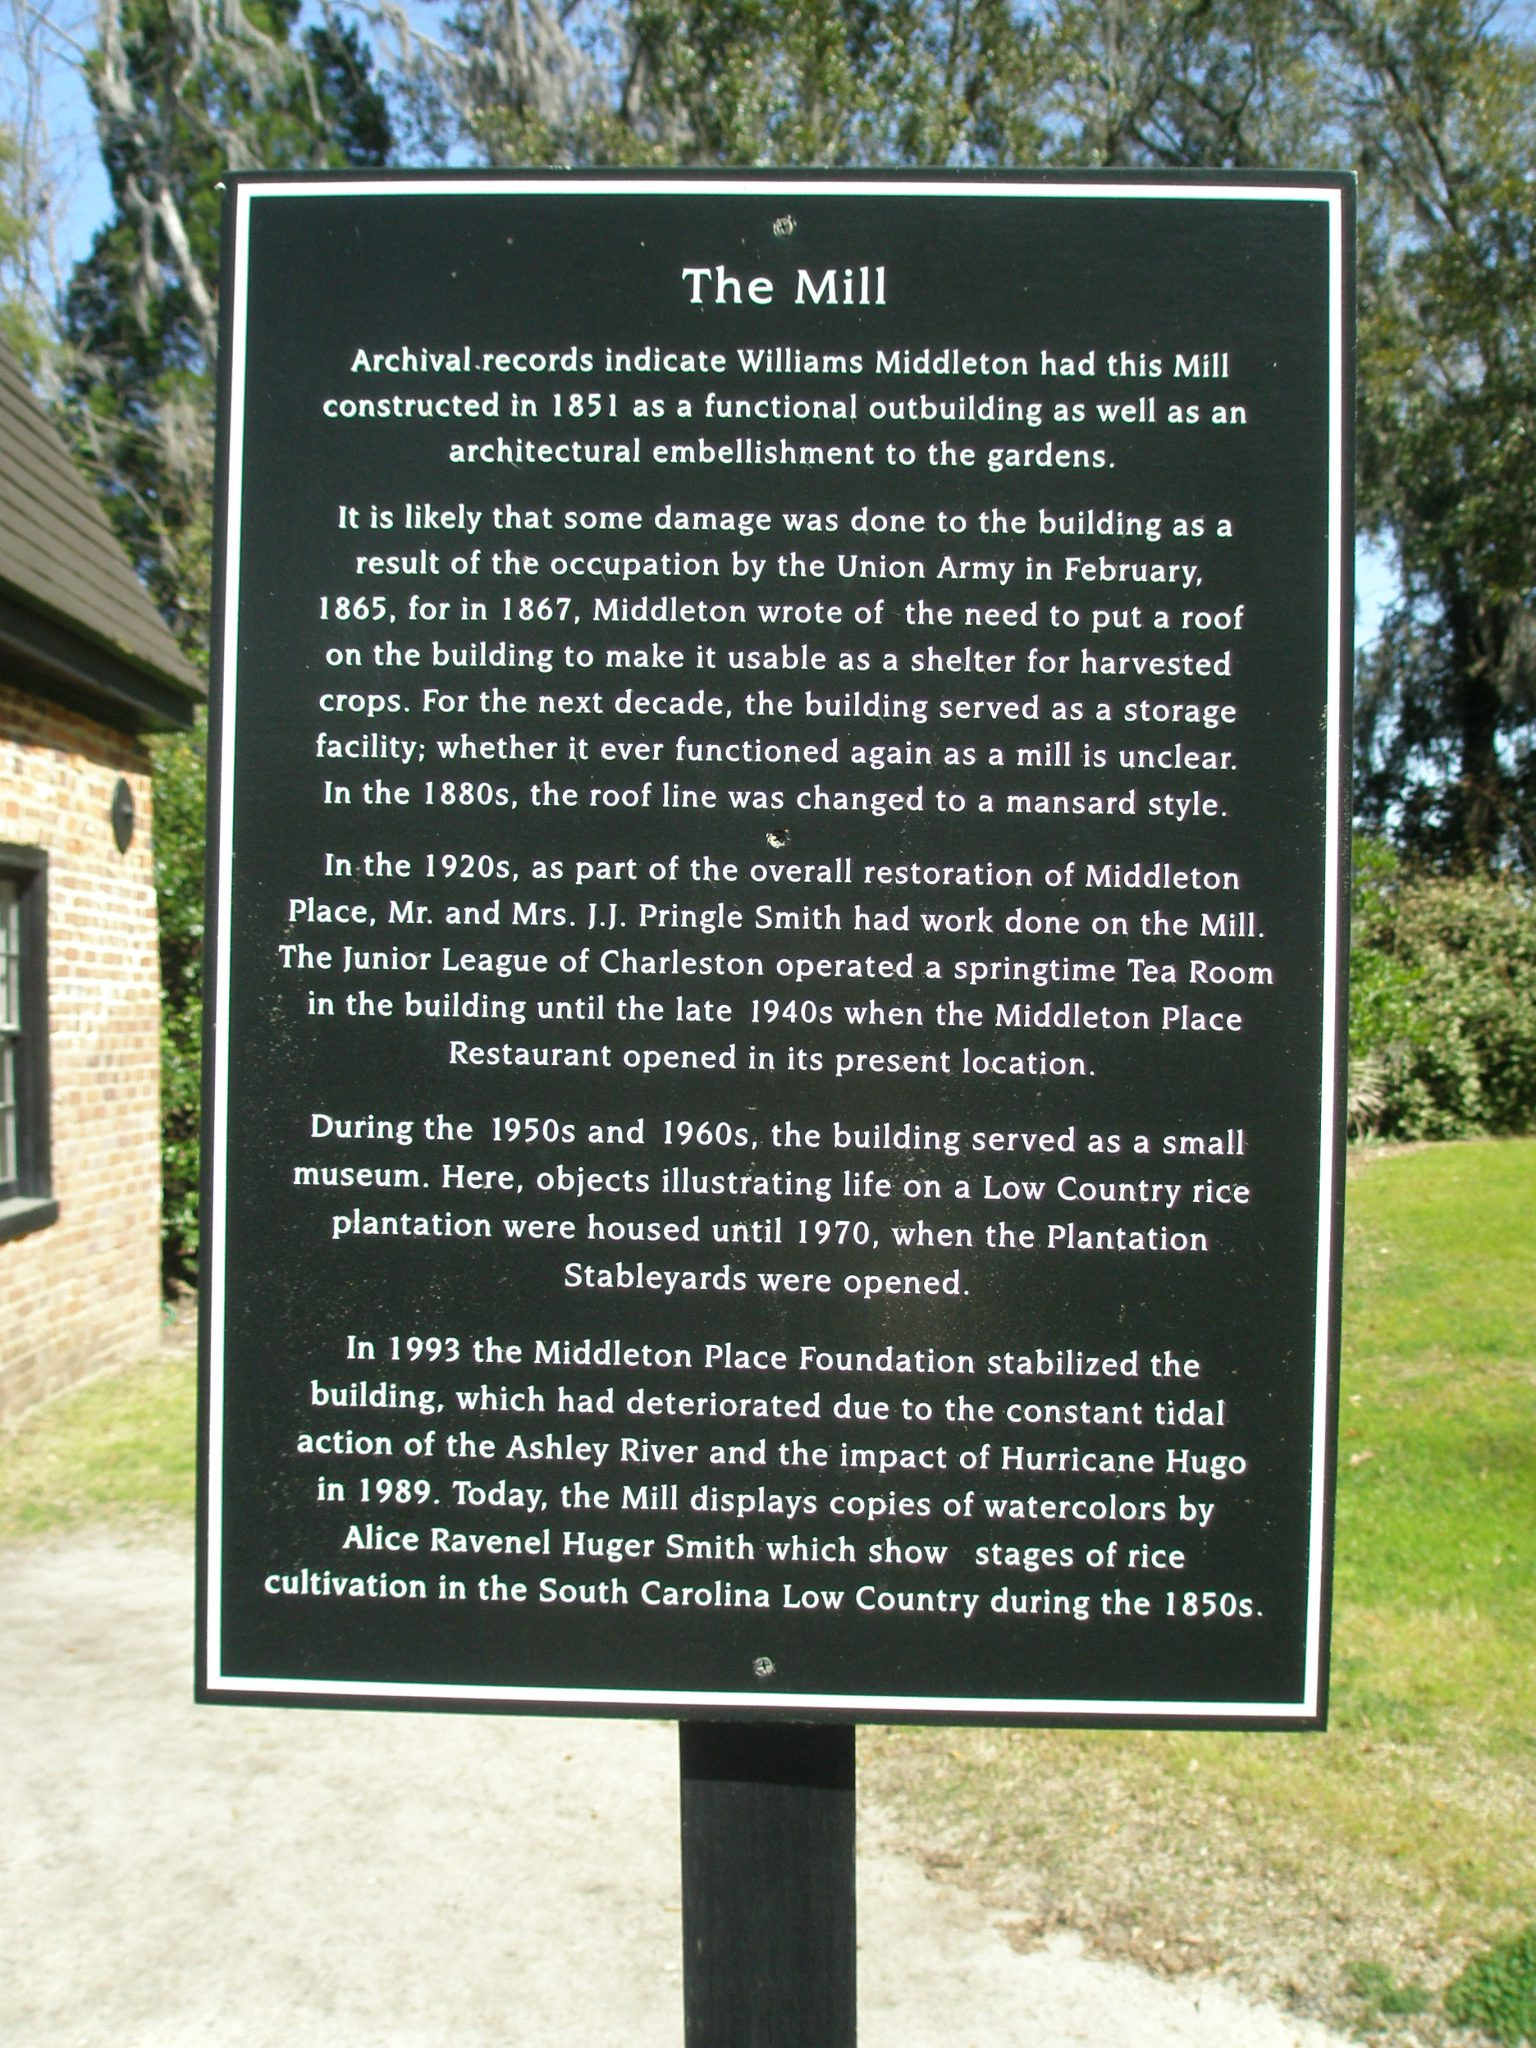 Plaque at The Mill